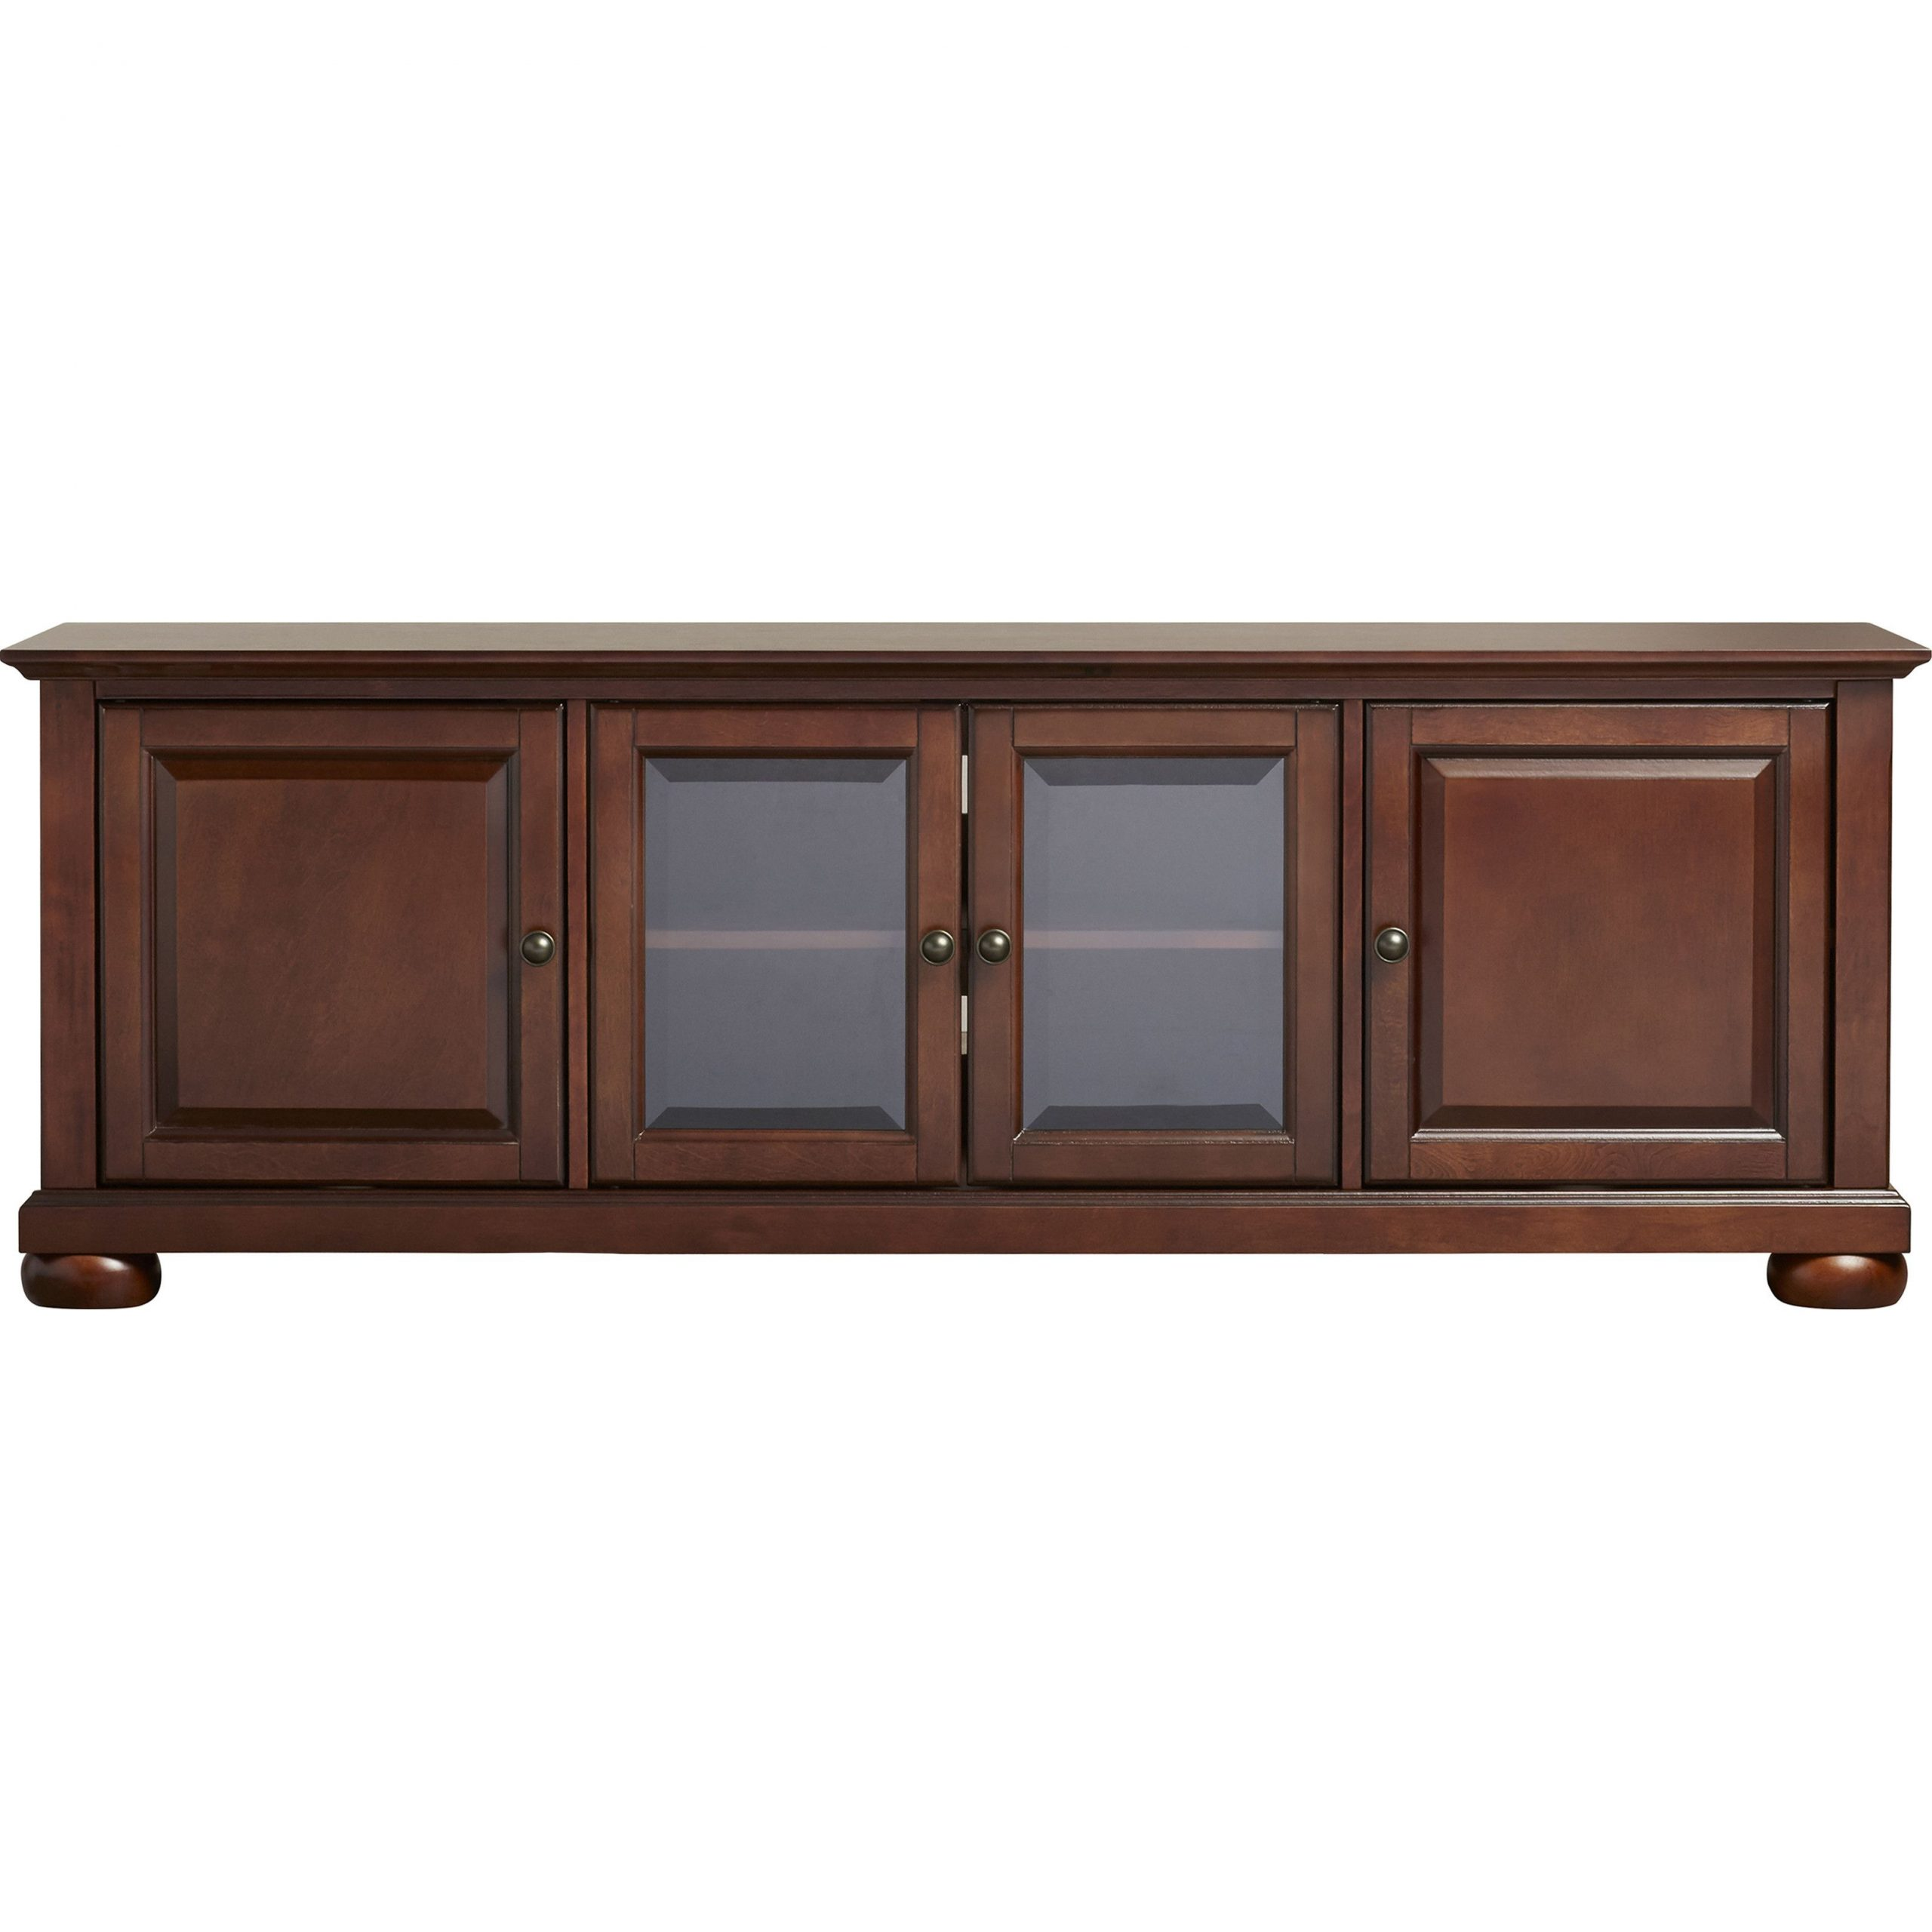 """2017 Sunbury Tv Stands For Tvs Up To 65"""" Within Sunbury Tv Stand For Tvs Up To 65 Inches (View 11 of 25)"""